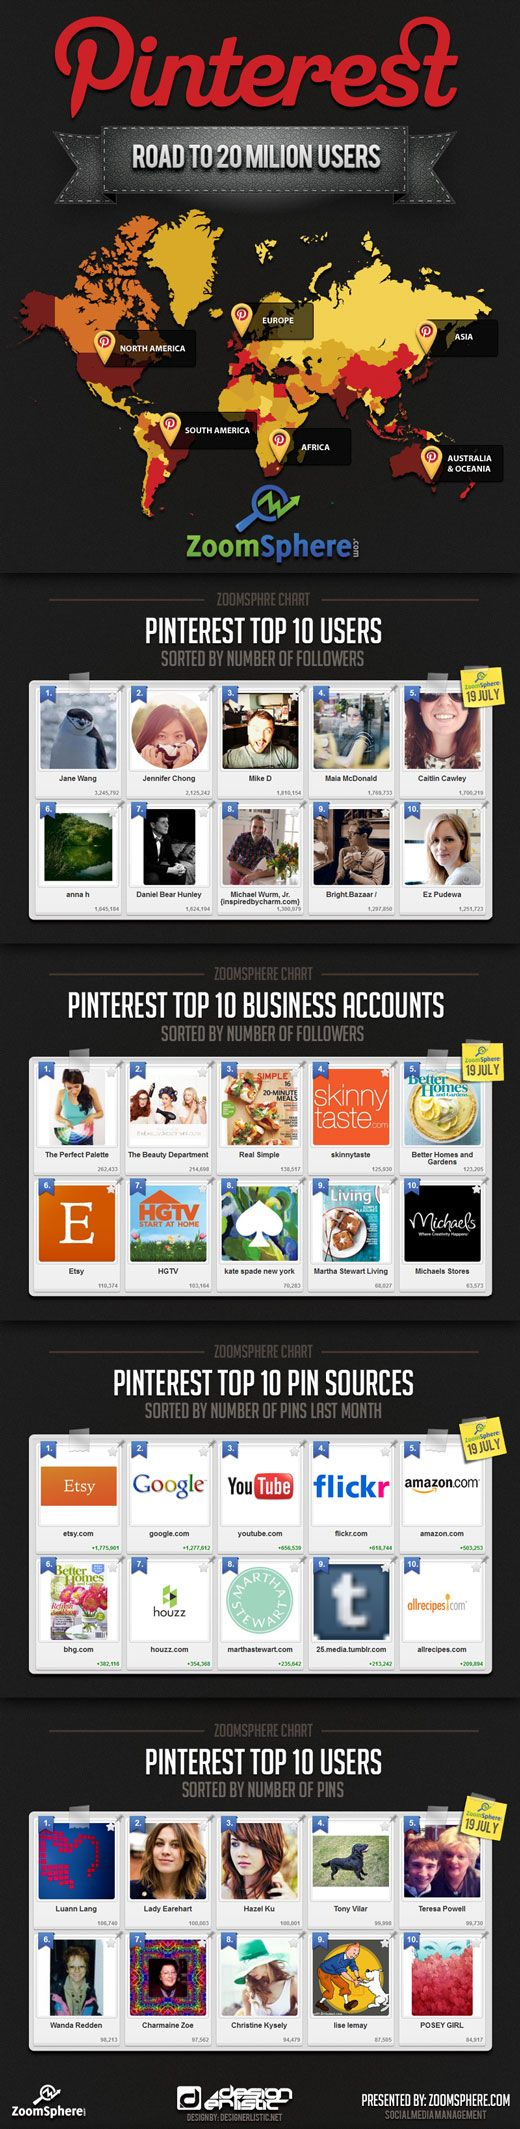 Road to 20 Million Users #Pinterest